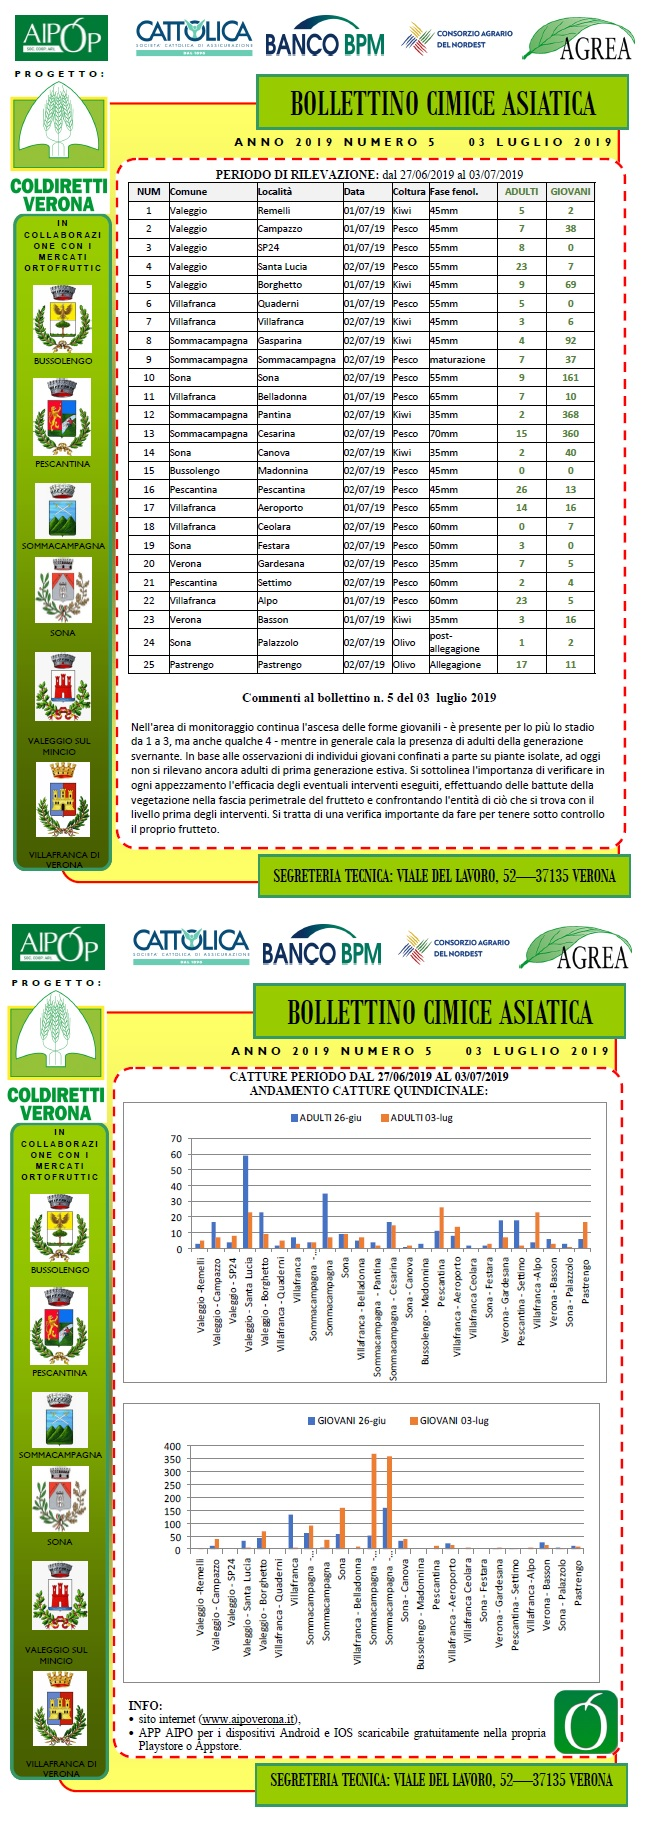 BOLLETTINO CIMICE ASIATICA N. 5 DEL 03/07/2019